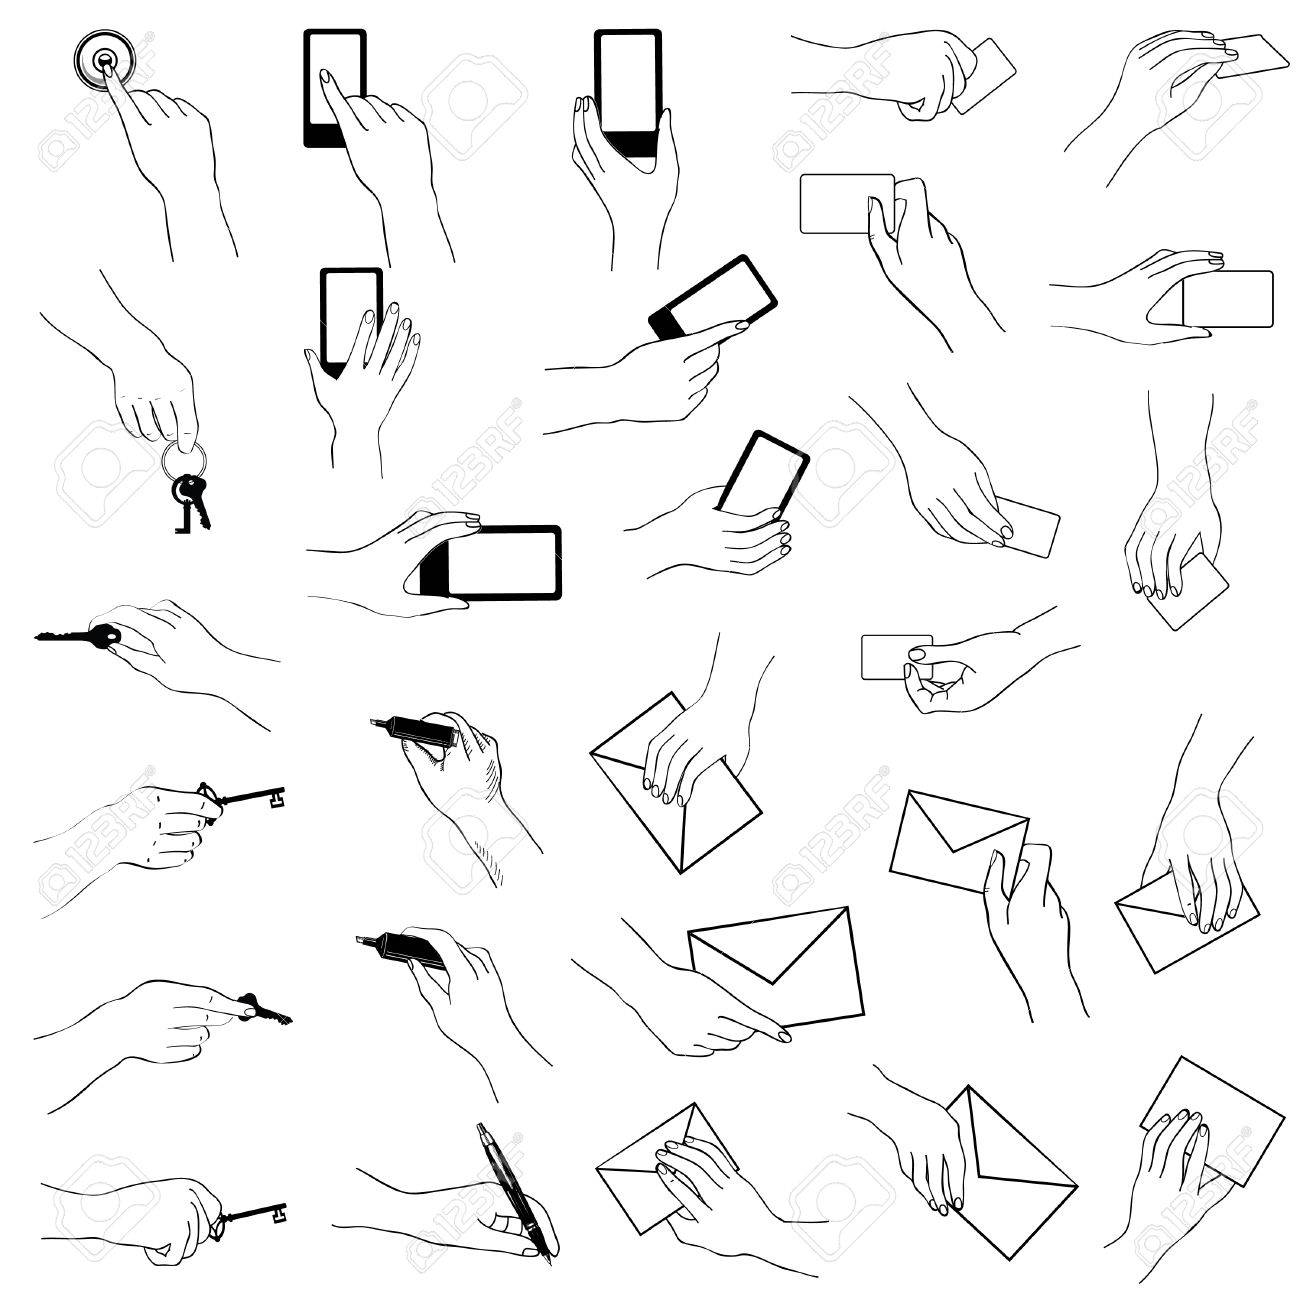 1300x1300 Hand Gestures Collection. Hands Holding Key, Phone, Card. Sketch